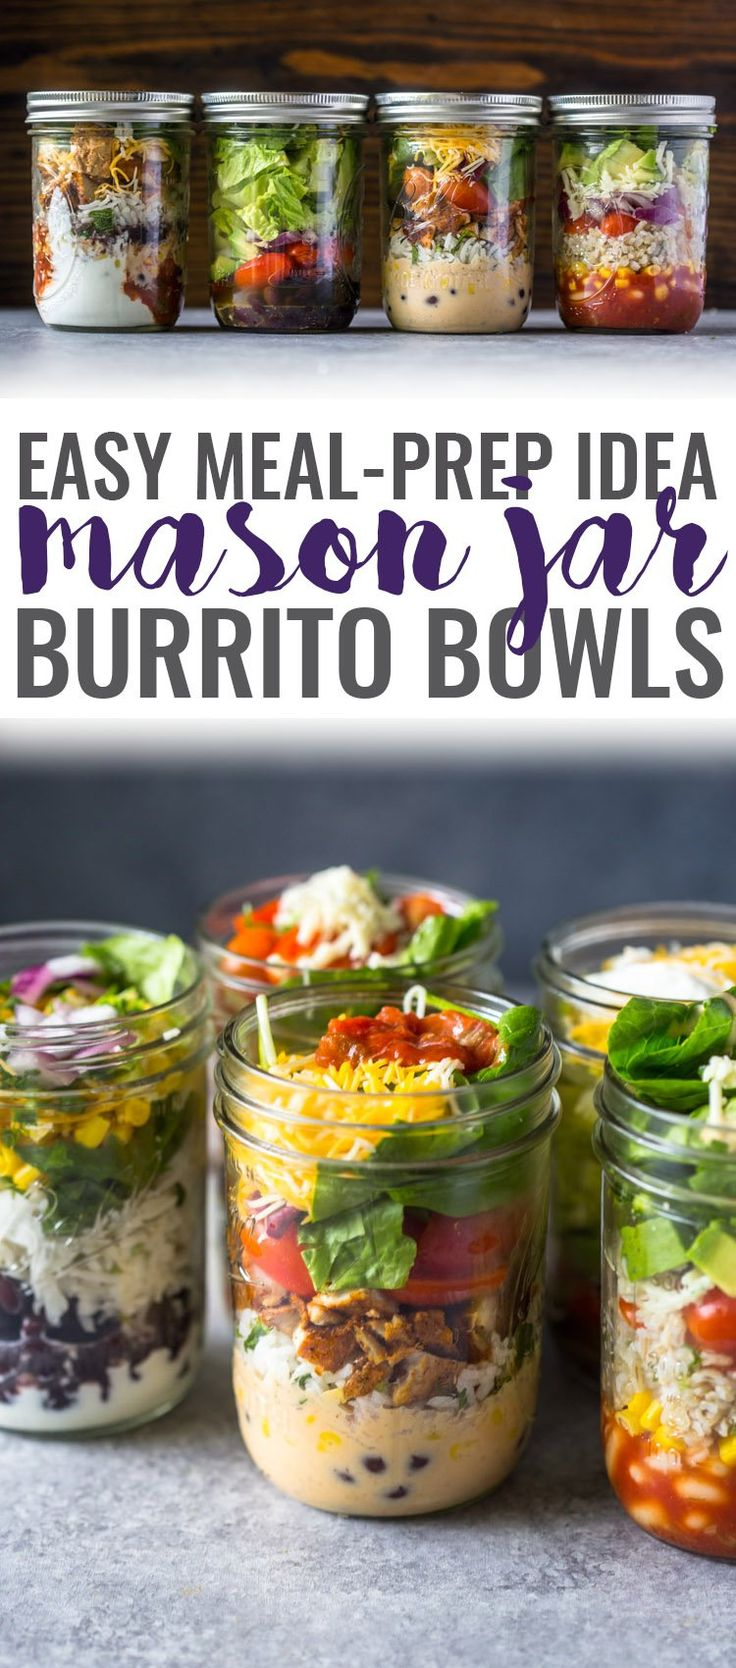 Shake up your lunch time routine with these healthy mason jar burrito bowls. They are packed with protein, whole grains and nutritional veggies that will help keep you full for hours. They are also…